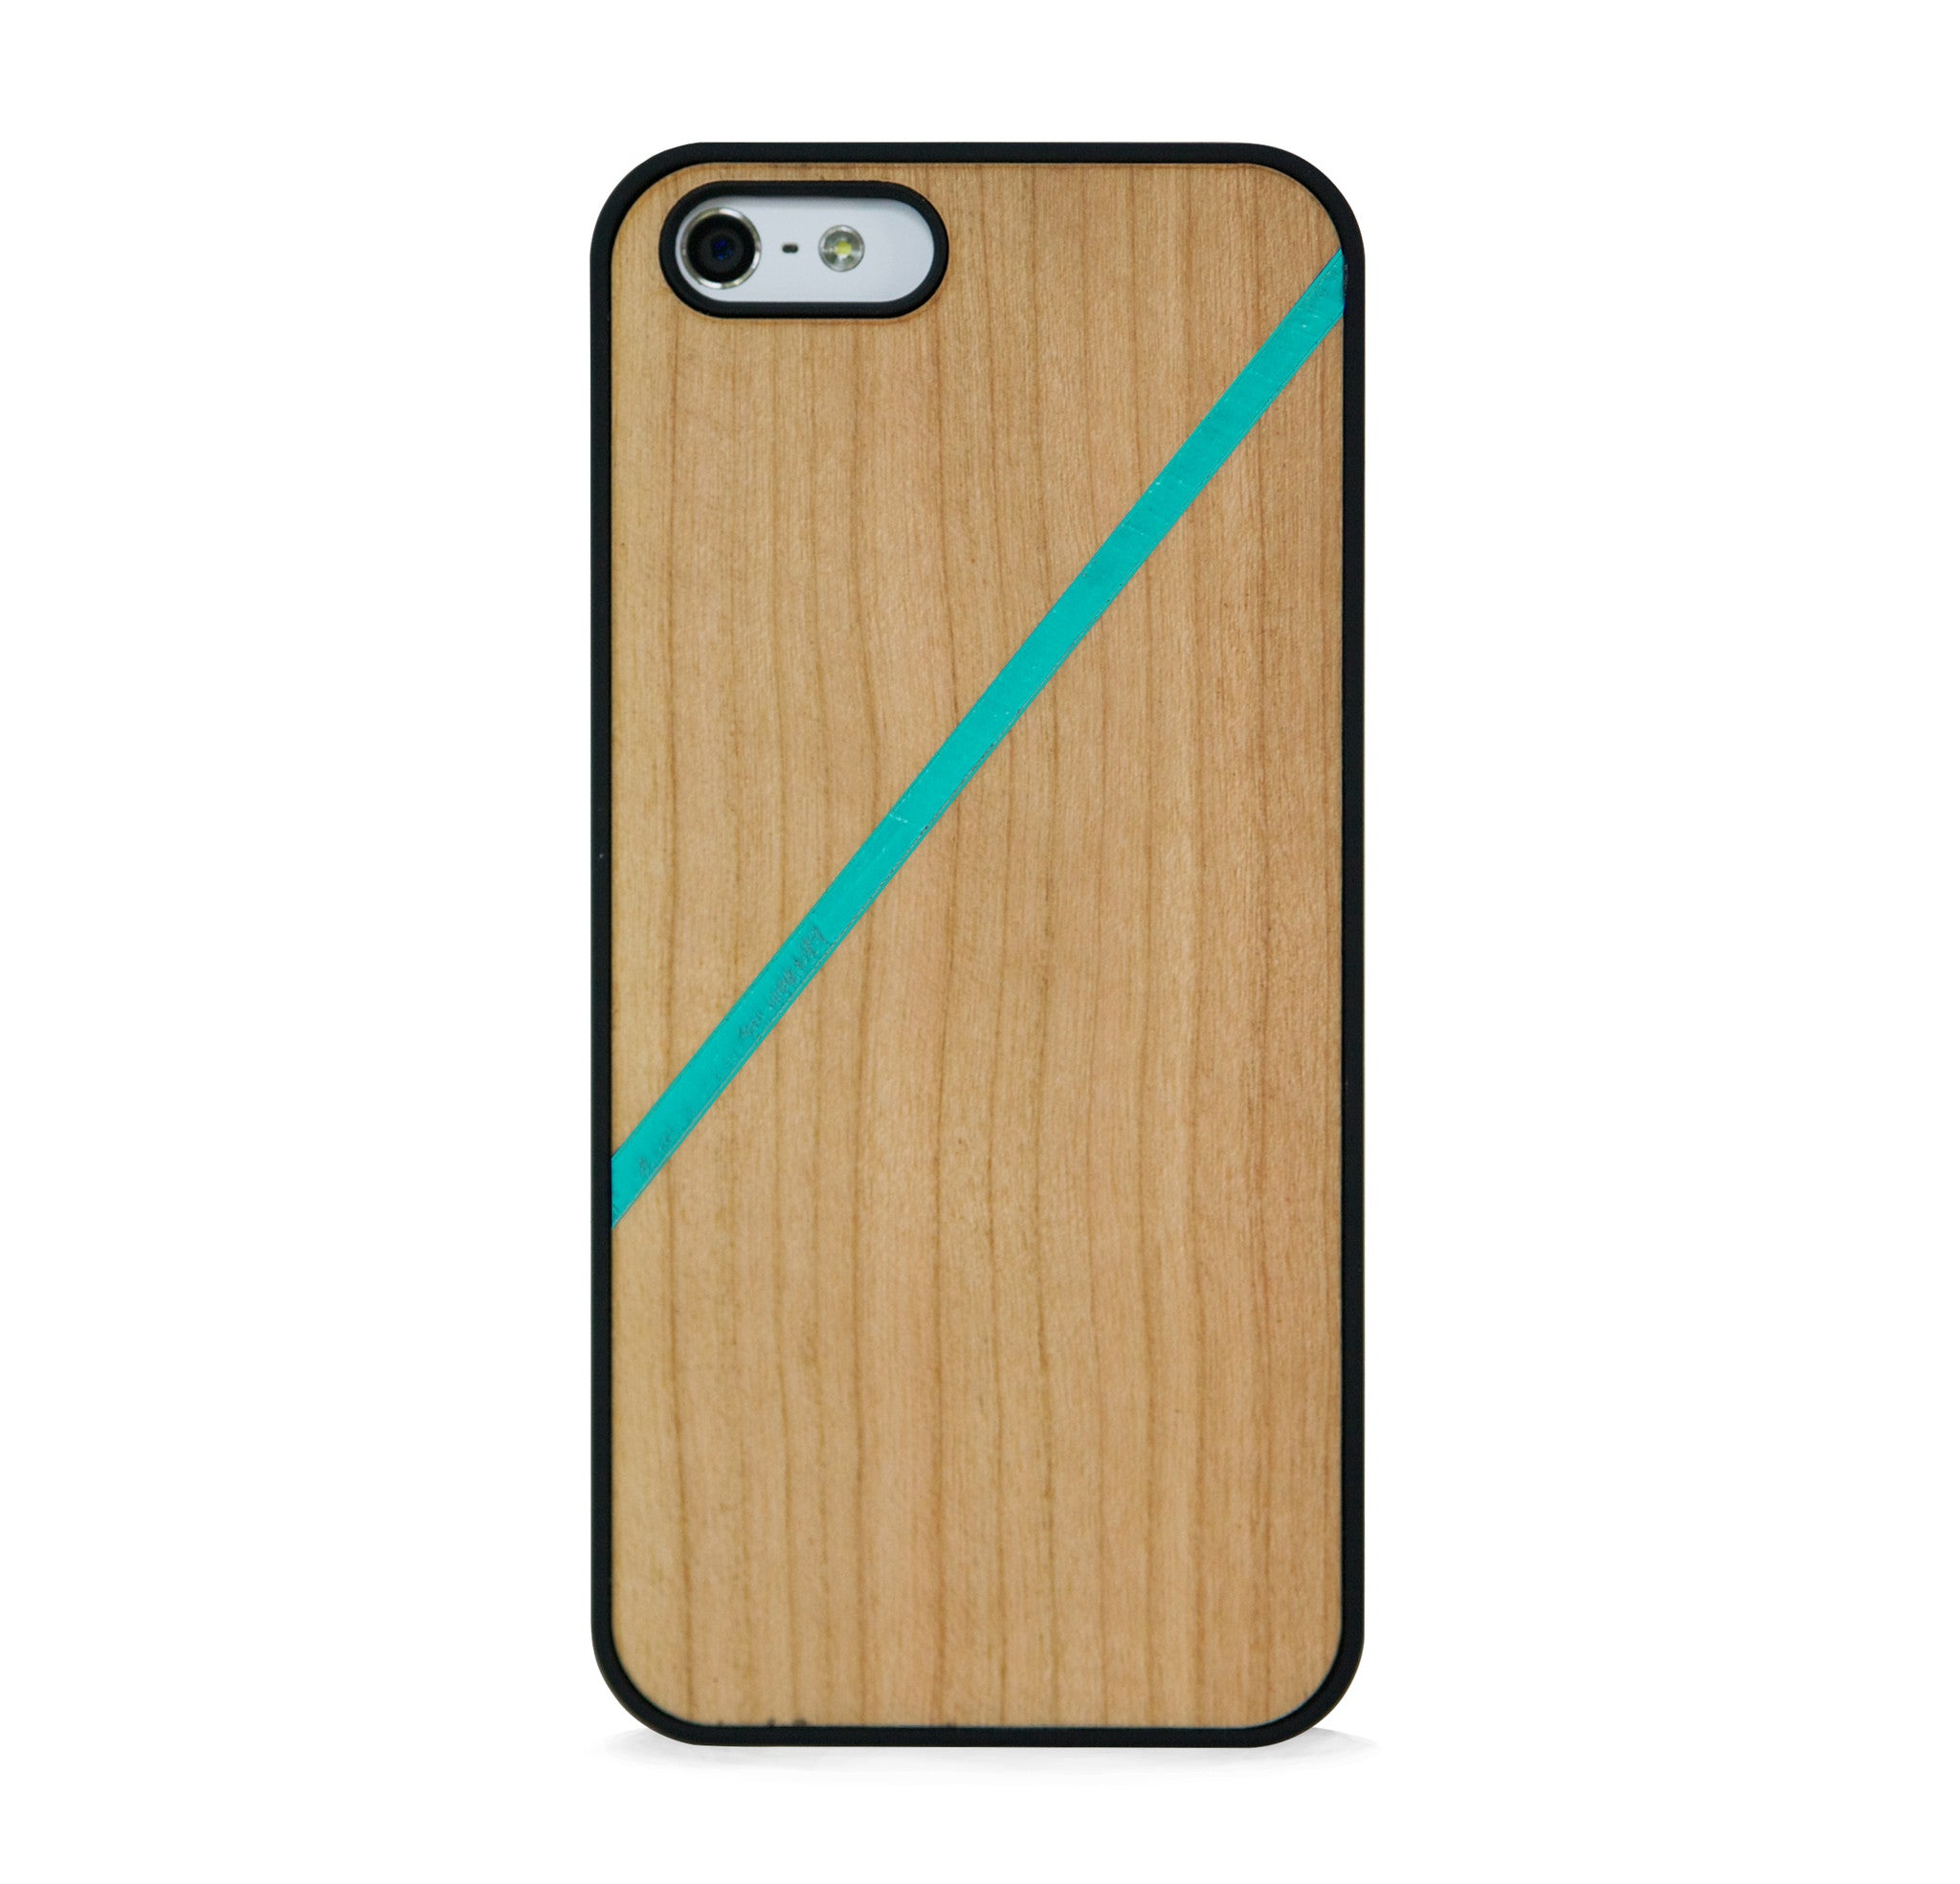 *WOOD CASE LINE COLOR BLOCK MINT FOR IPHONE 5/5s